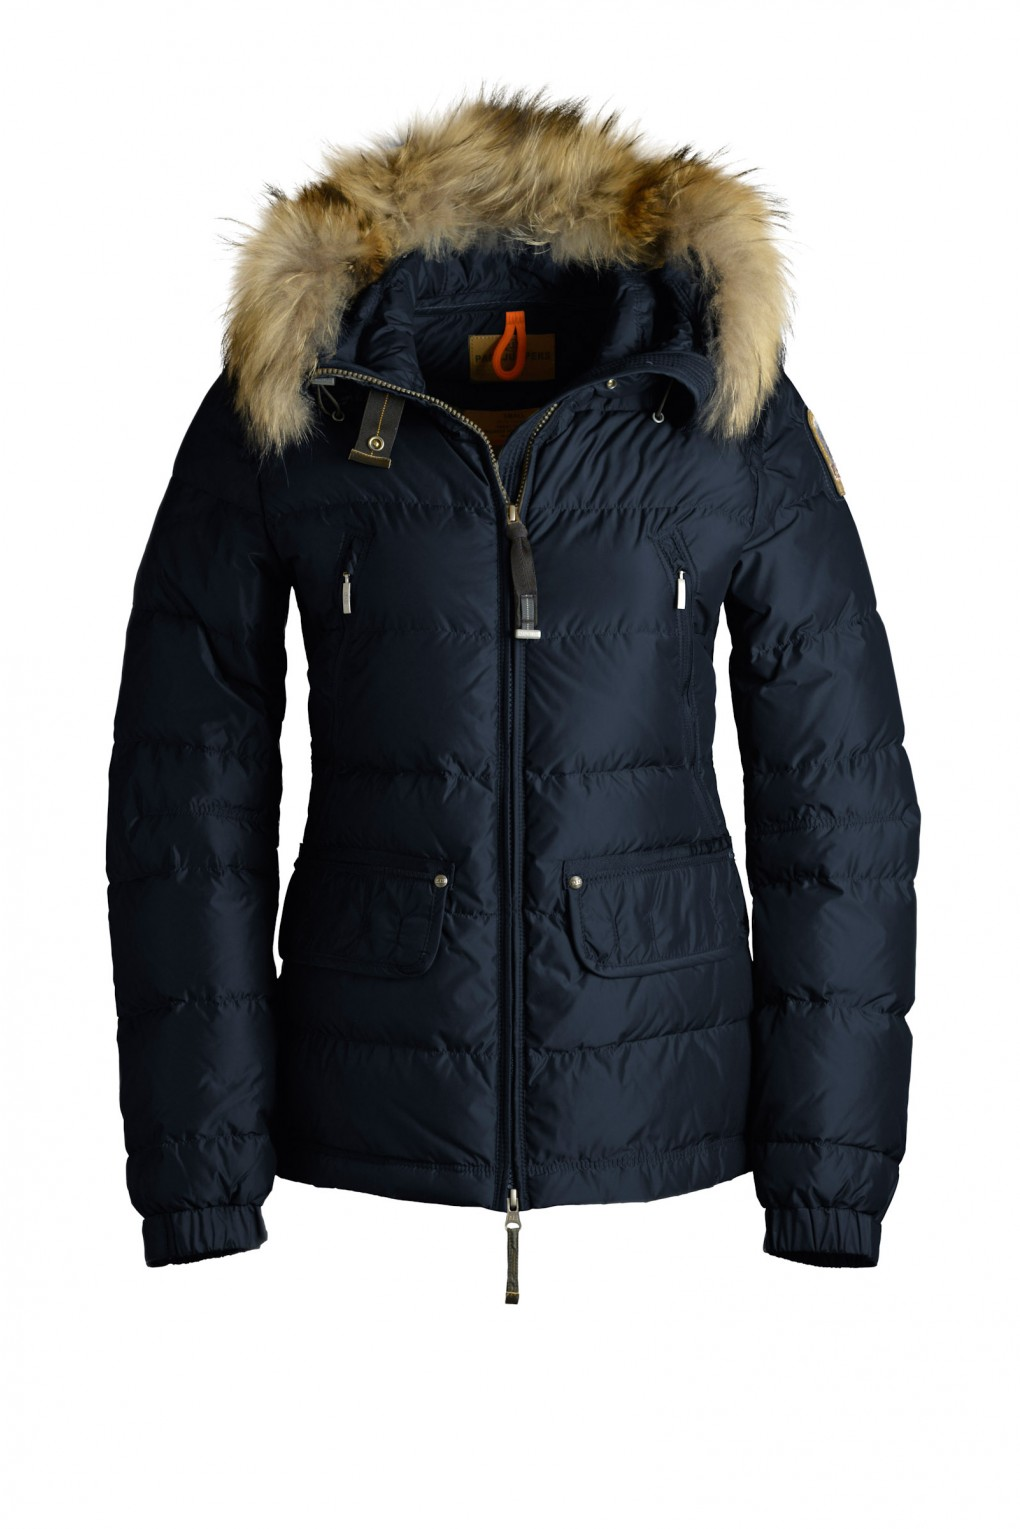 parajumpers ALASKA woman outerwear Navy